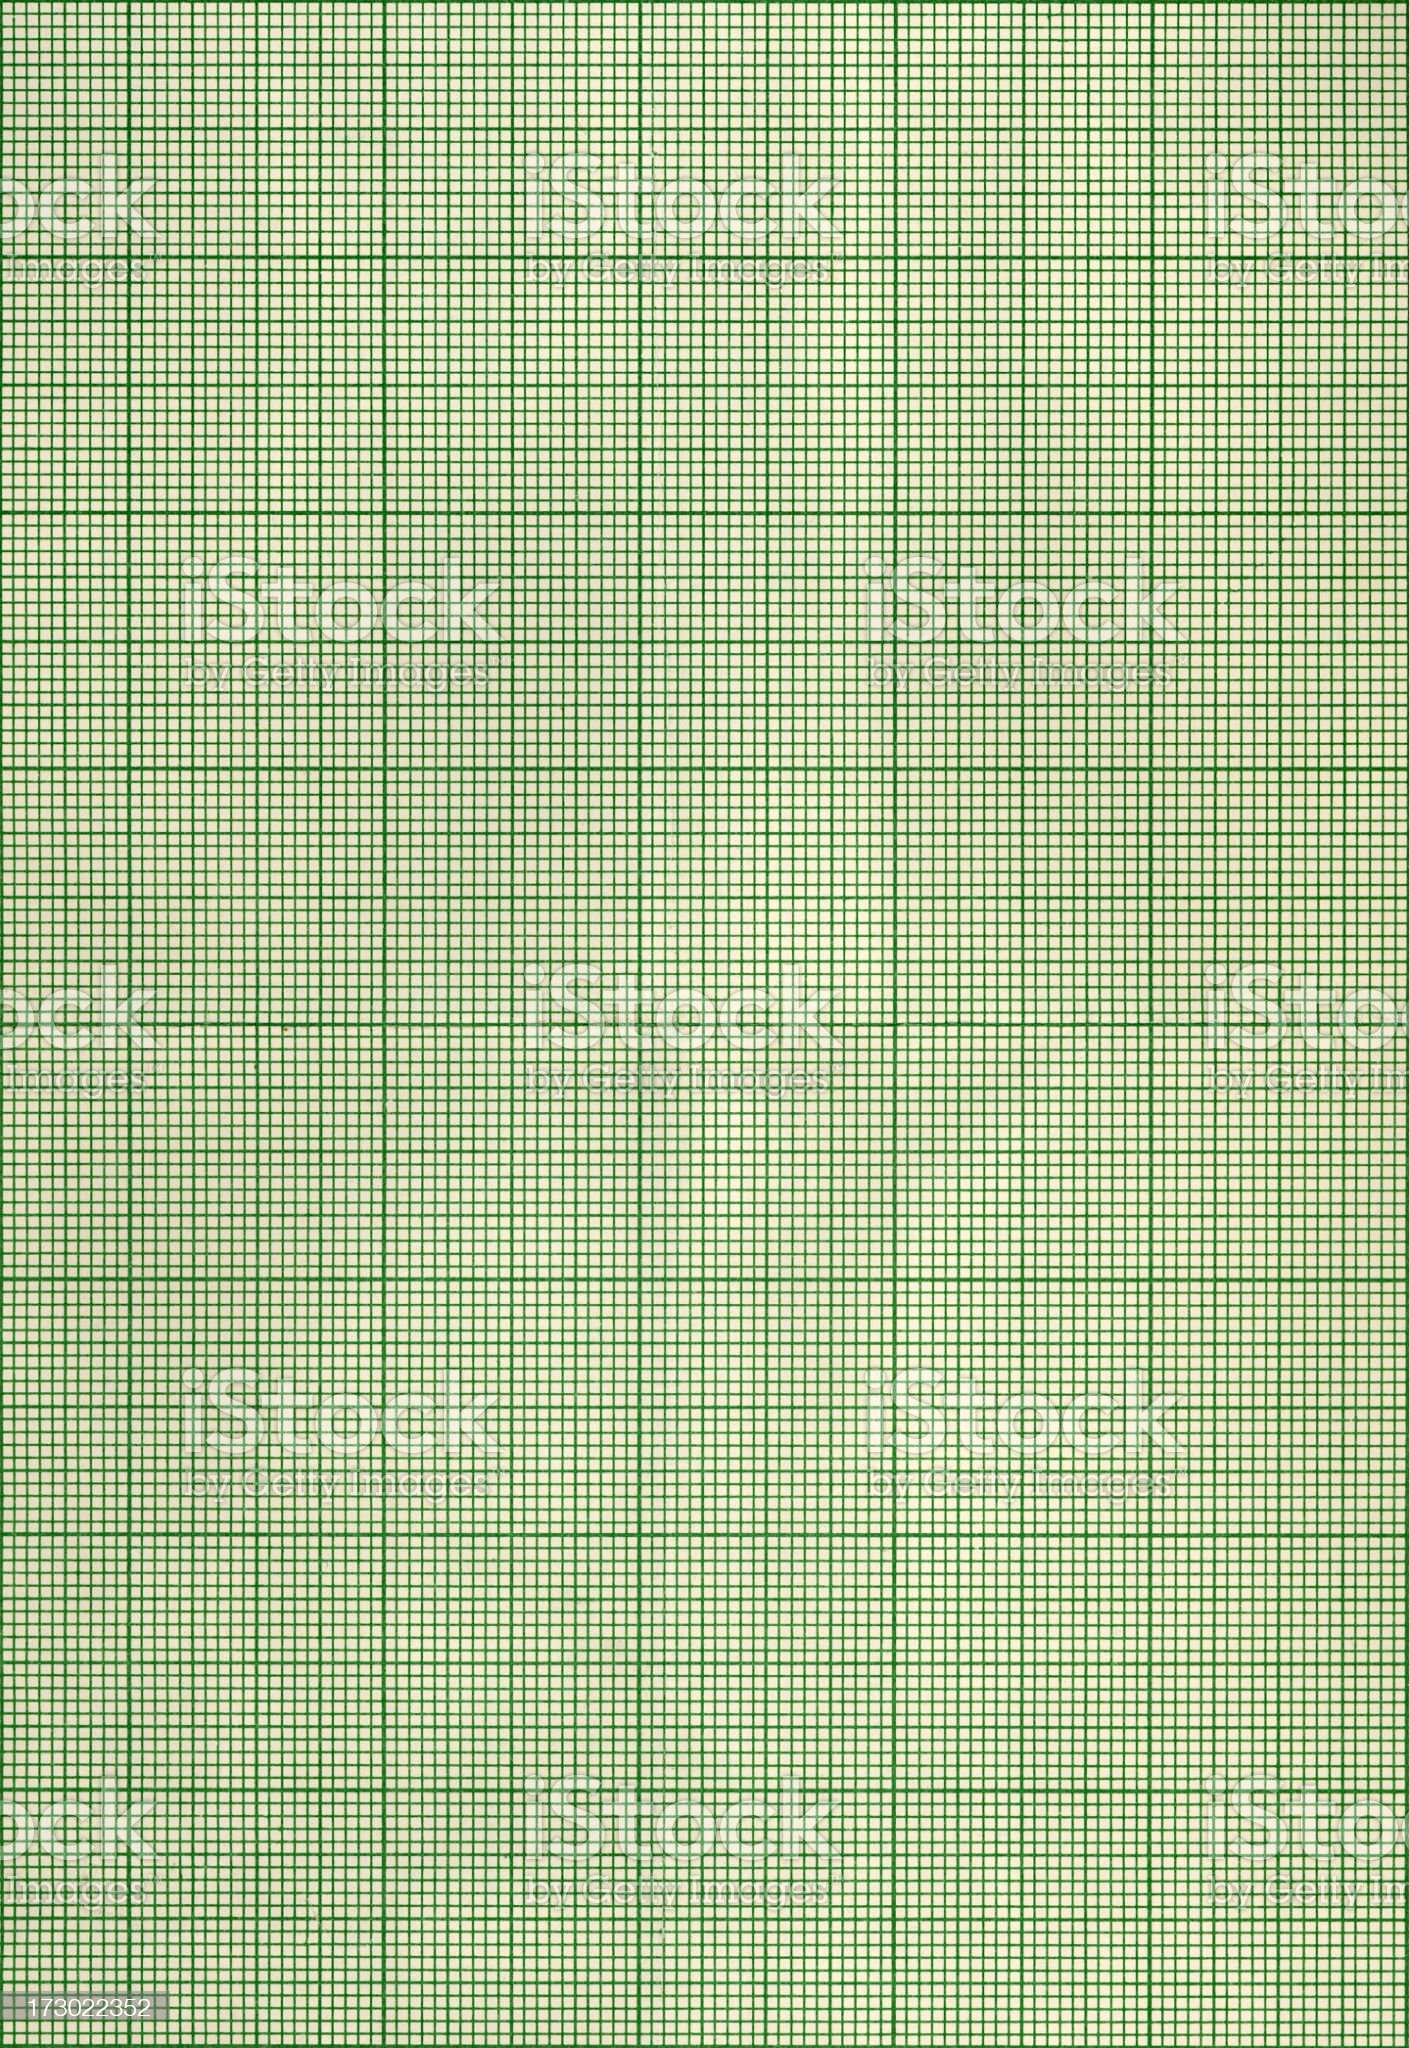 Green graph paper royalty-free stock photo